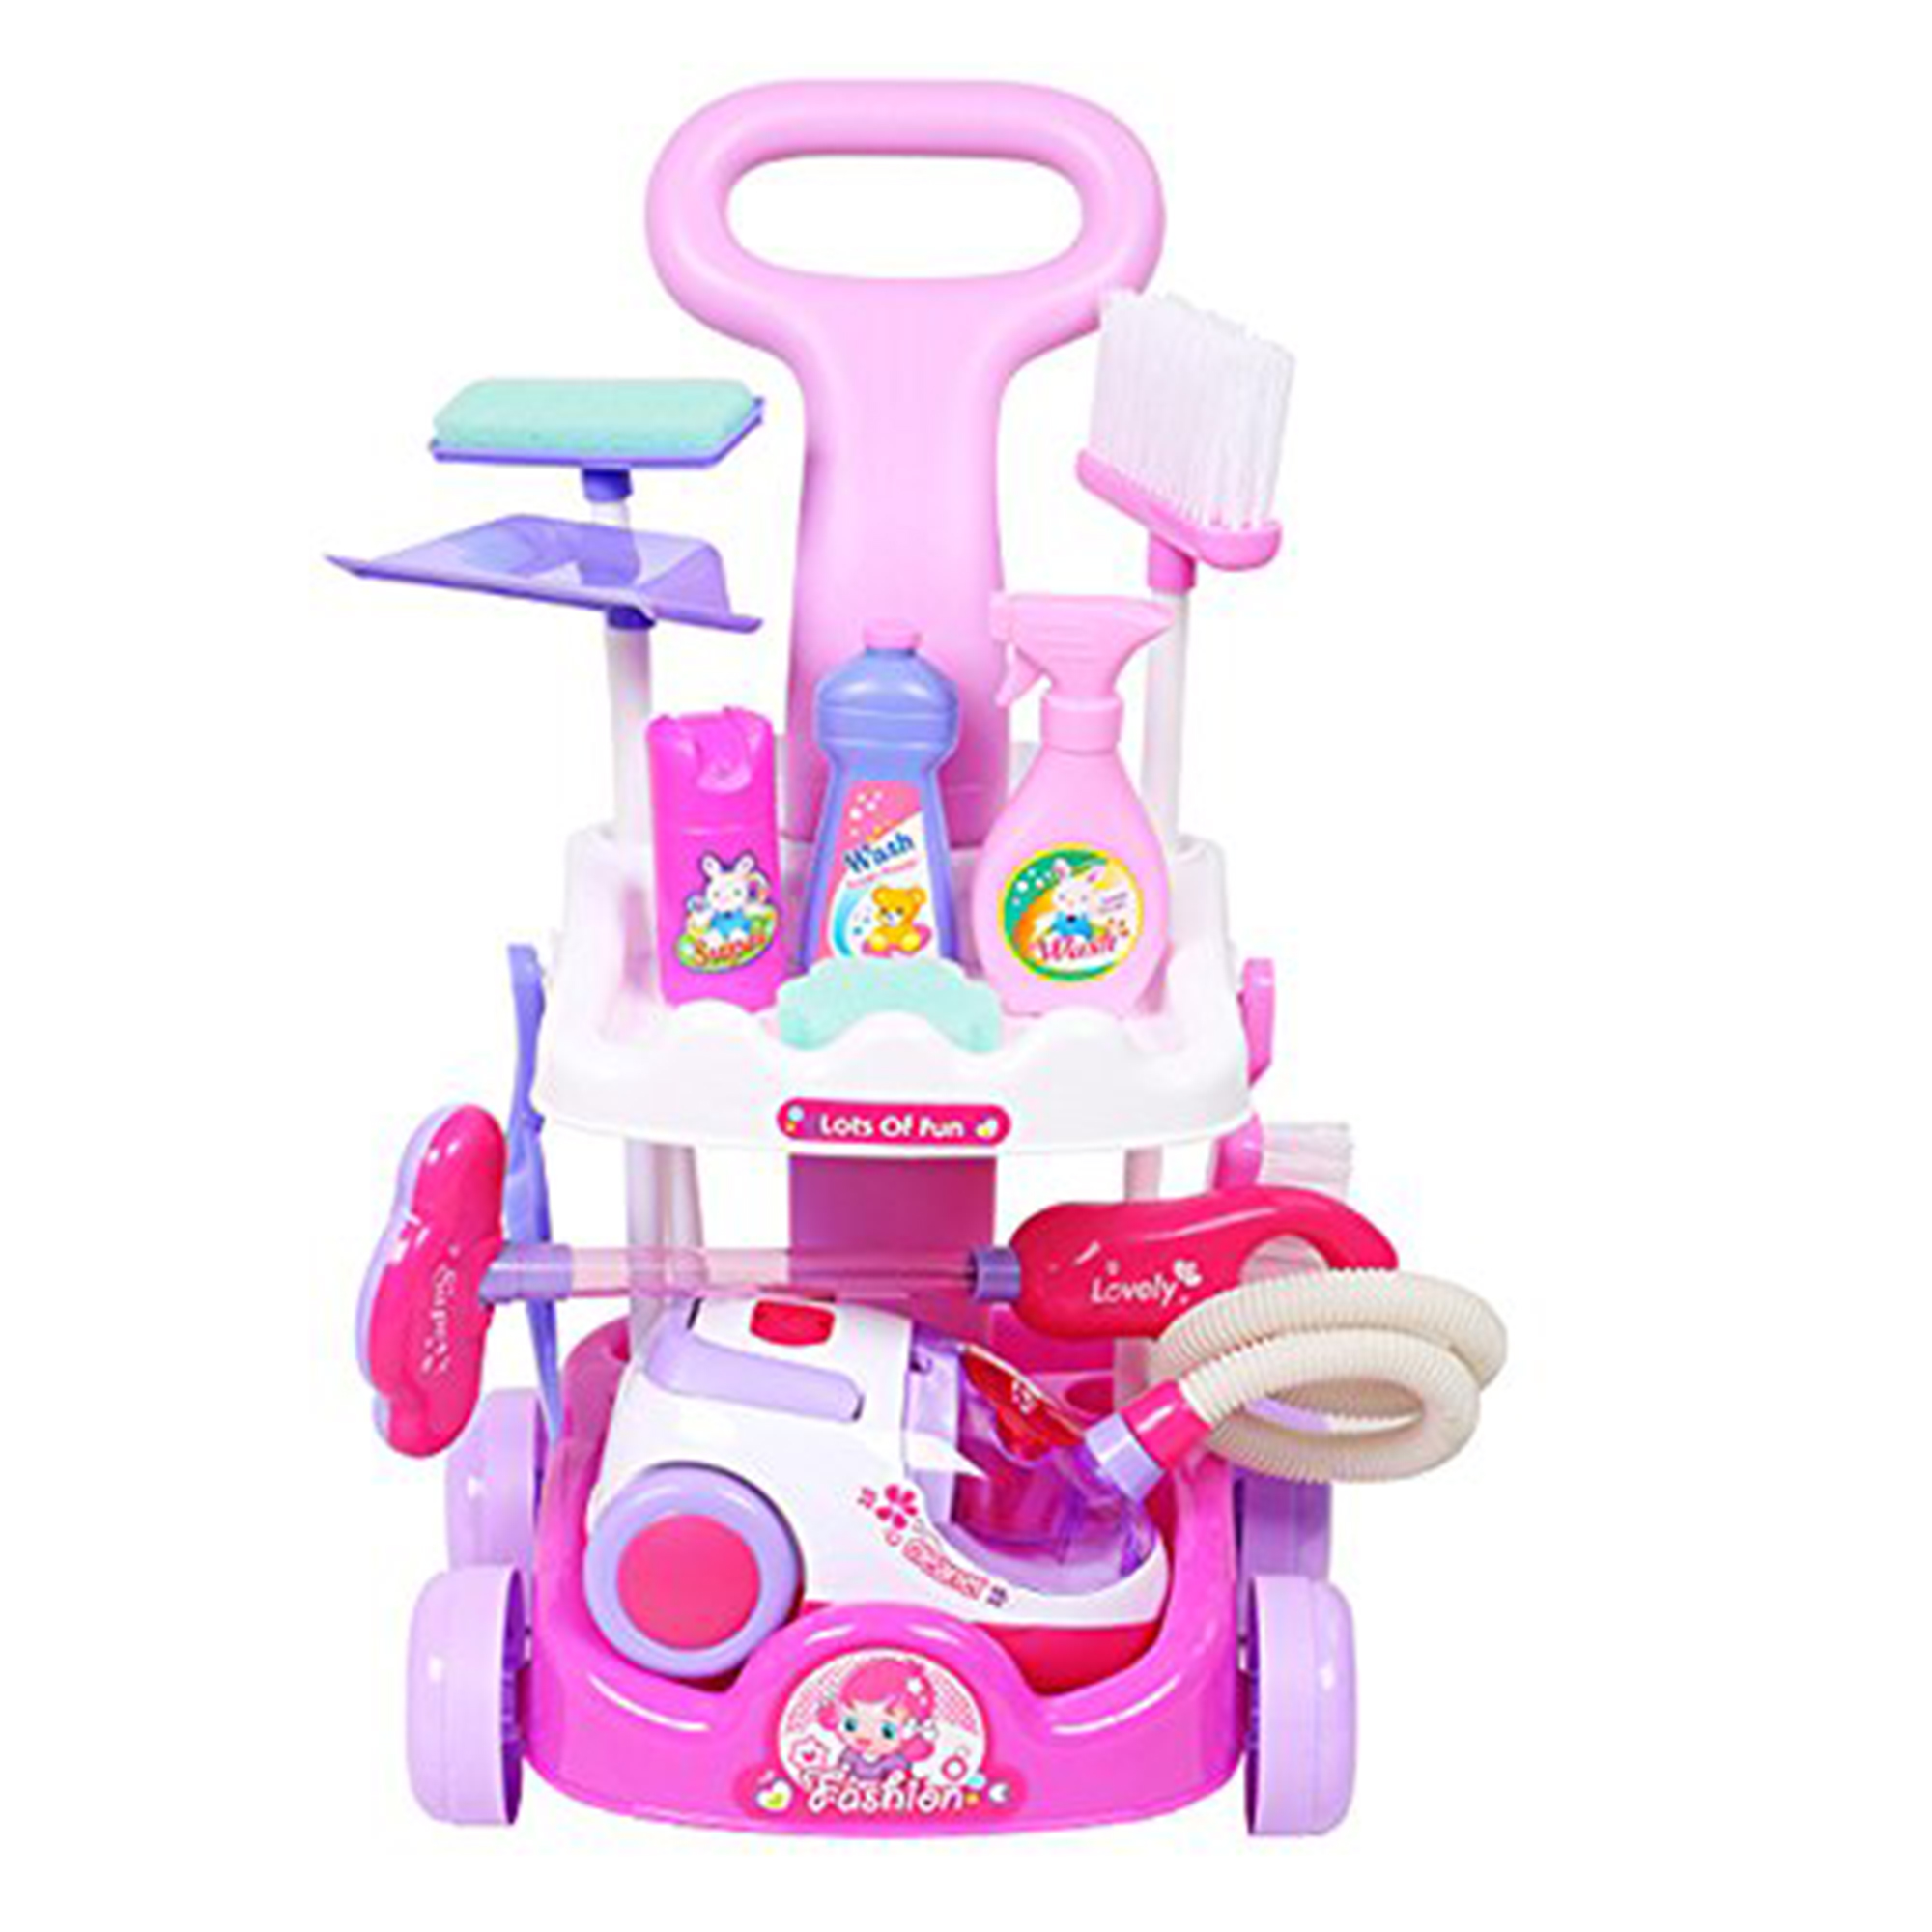 KARMAS PRODUCT Pretend Play Toys Vacuum Cleaner Playset Cleaning Trolley Cart for Kids